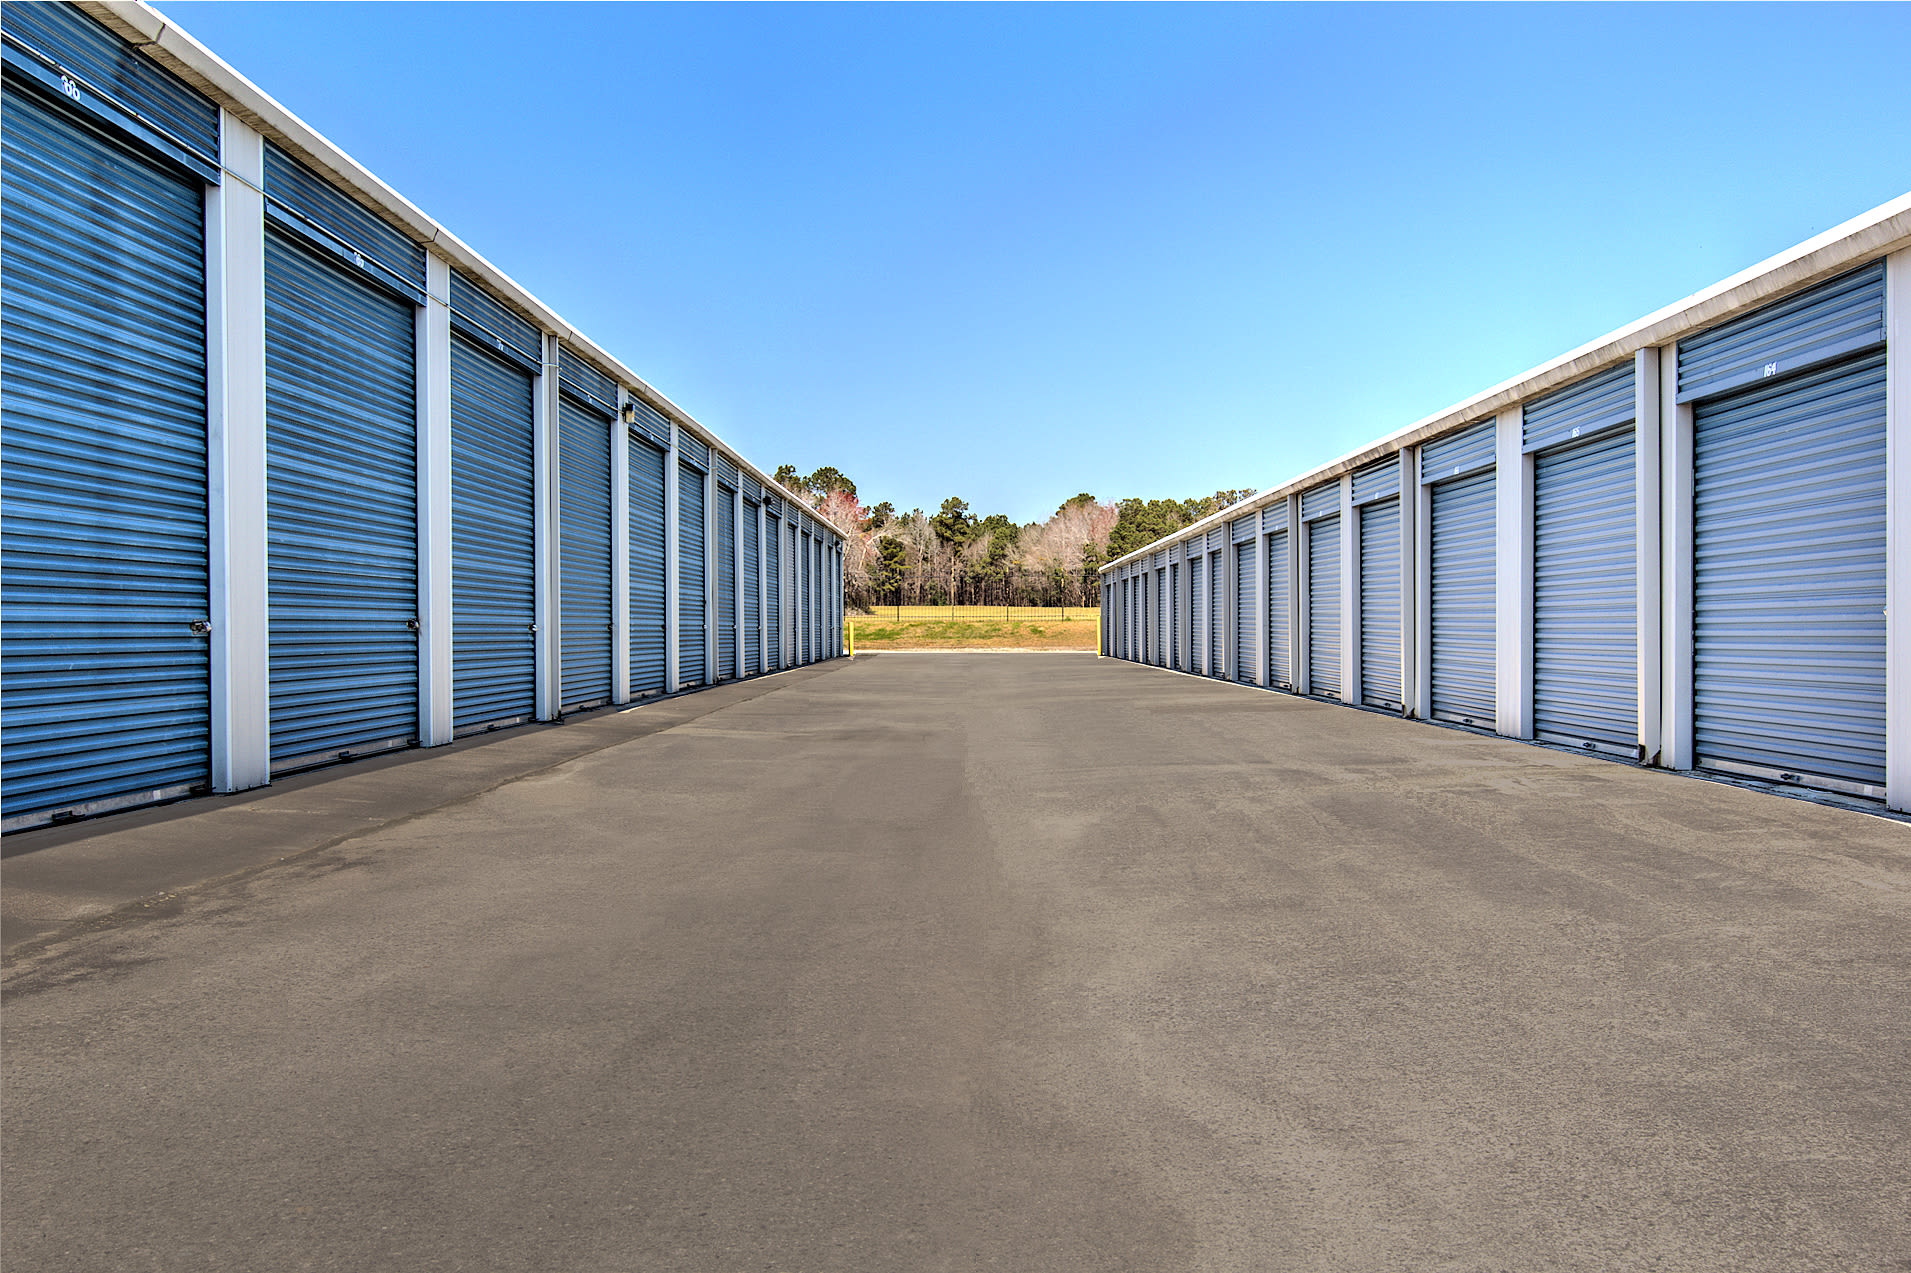 Wide driveways at Prime Storage in Shallotte, North Carolina